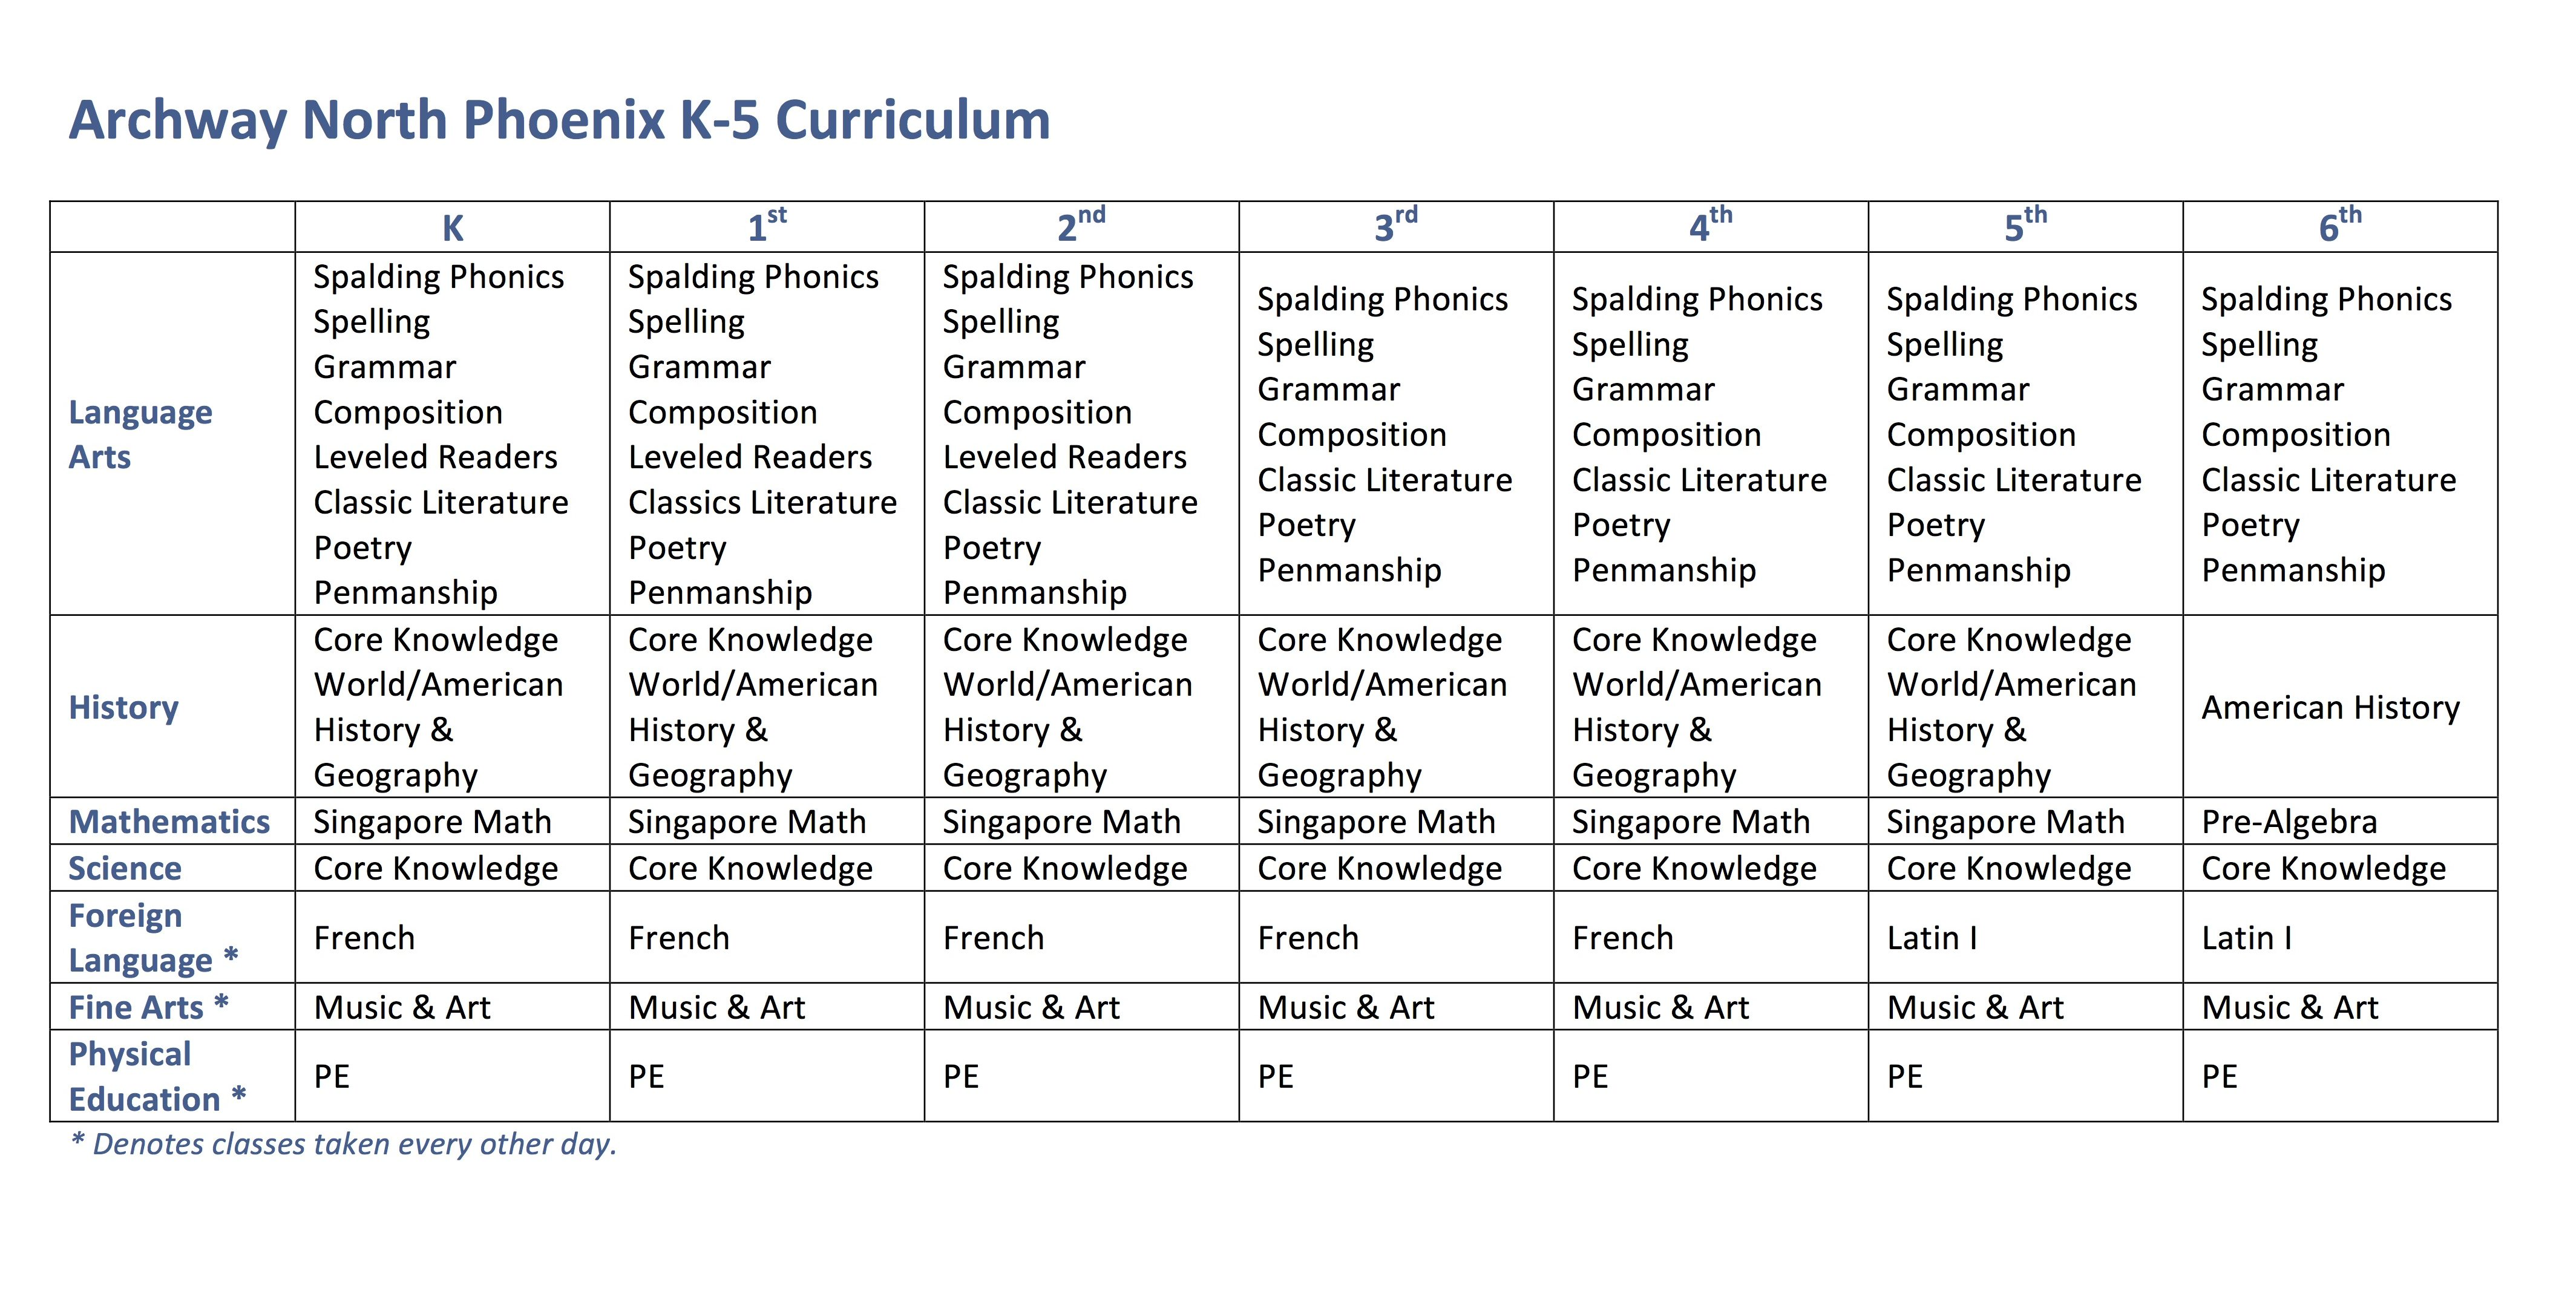 archway-north-phoenix-k-6-curriculum - Great Hearts Archway